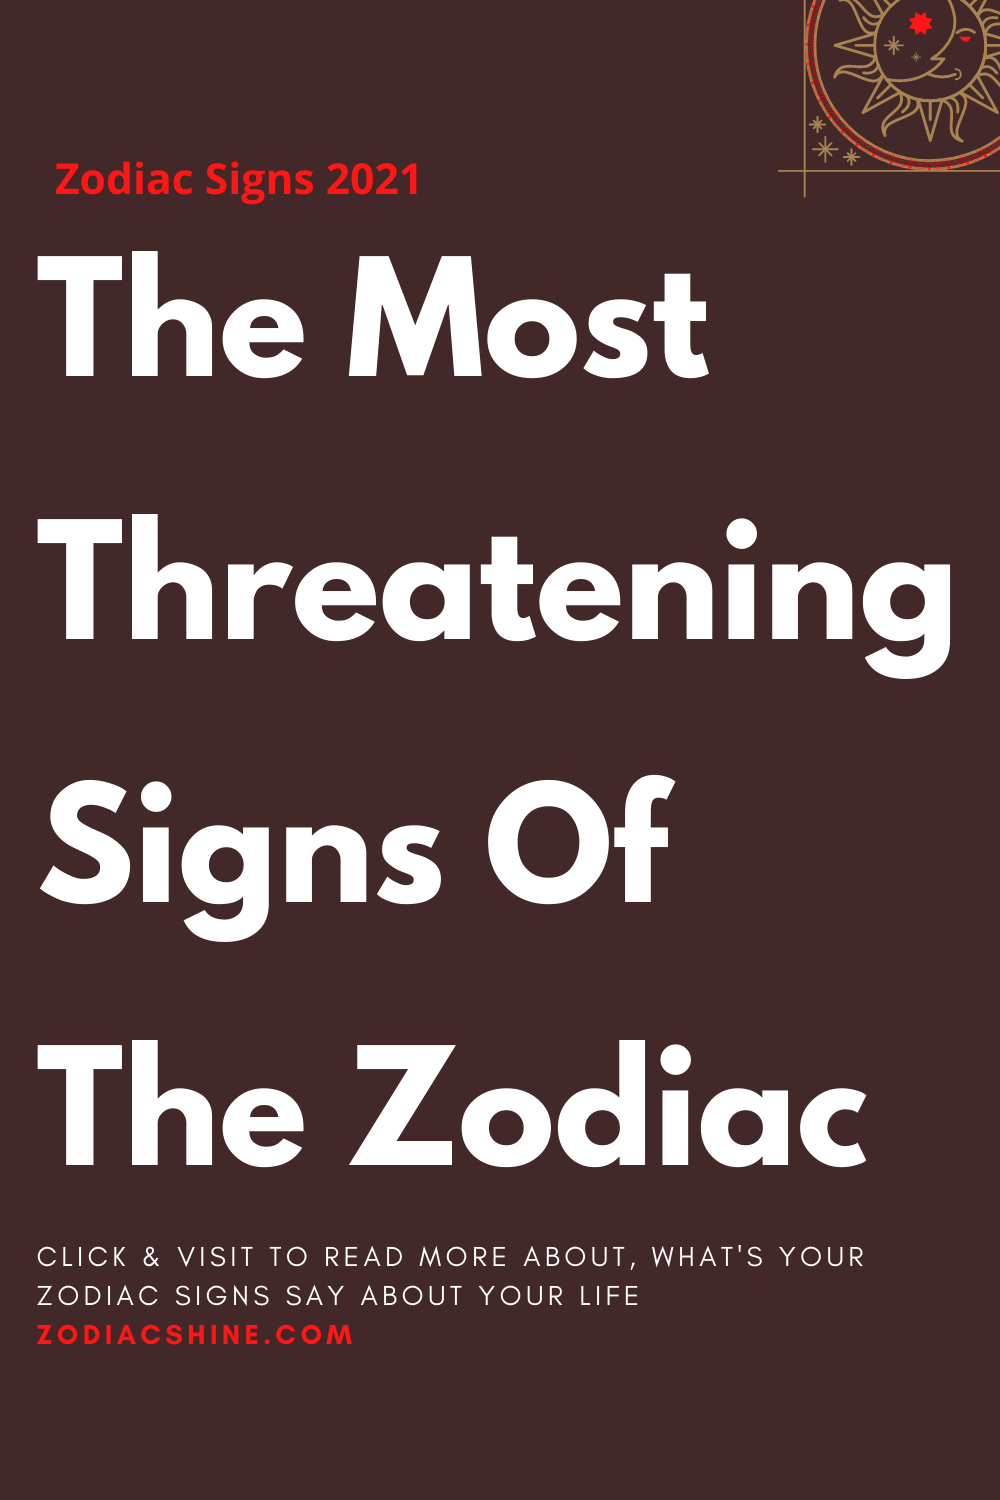 The Most Threatening Signs Of The Zodiac